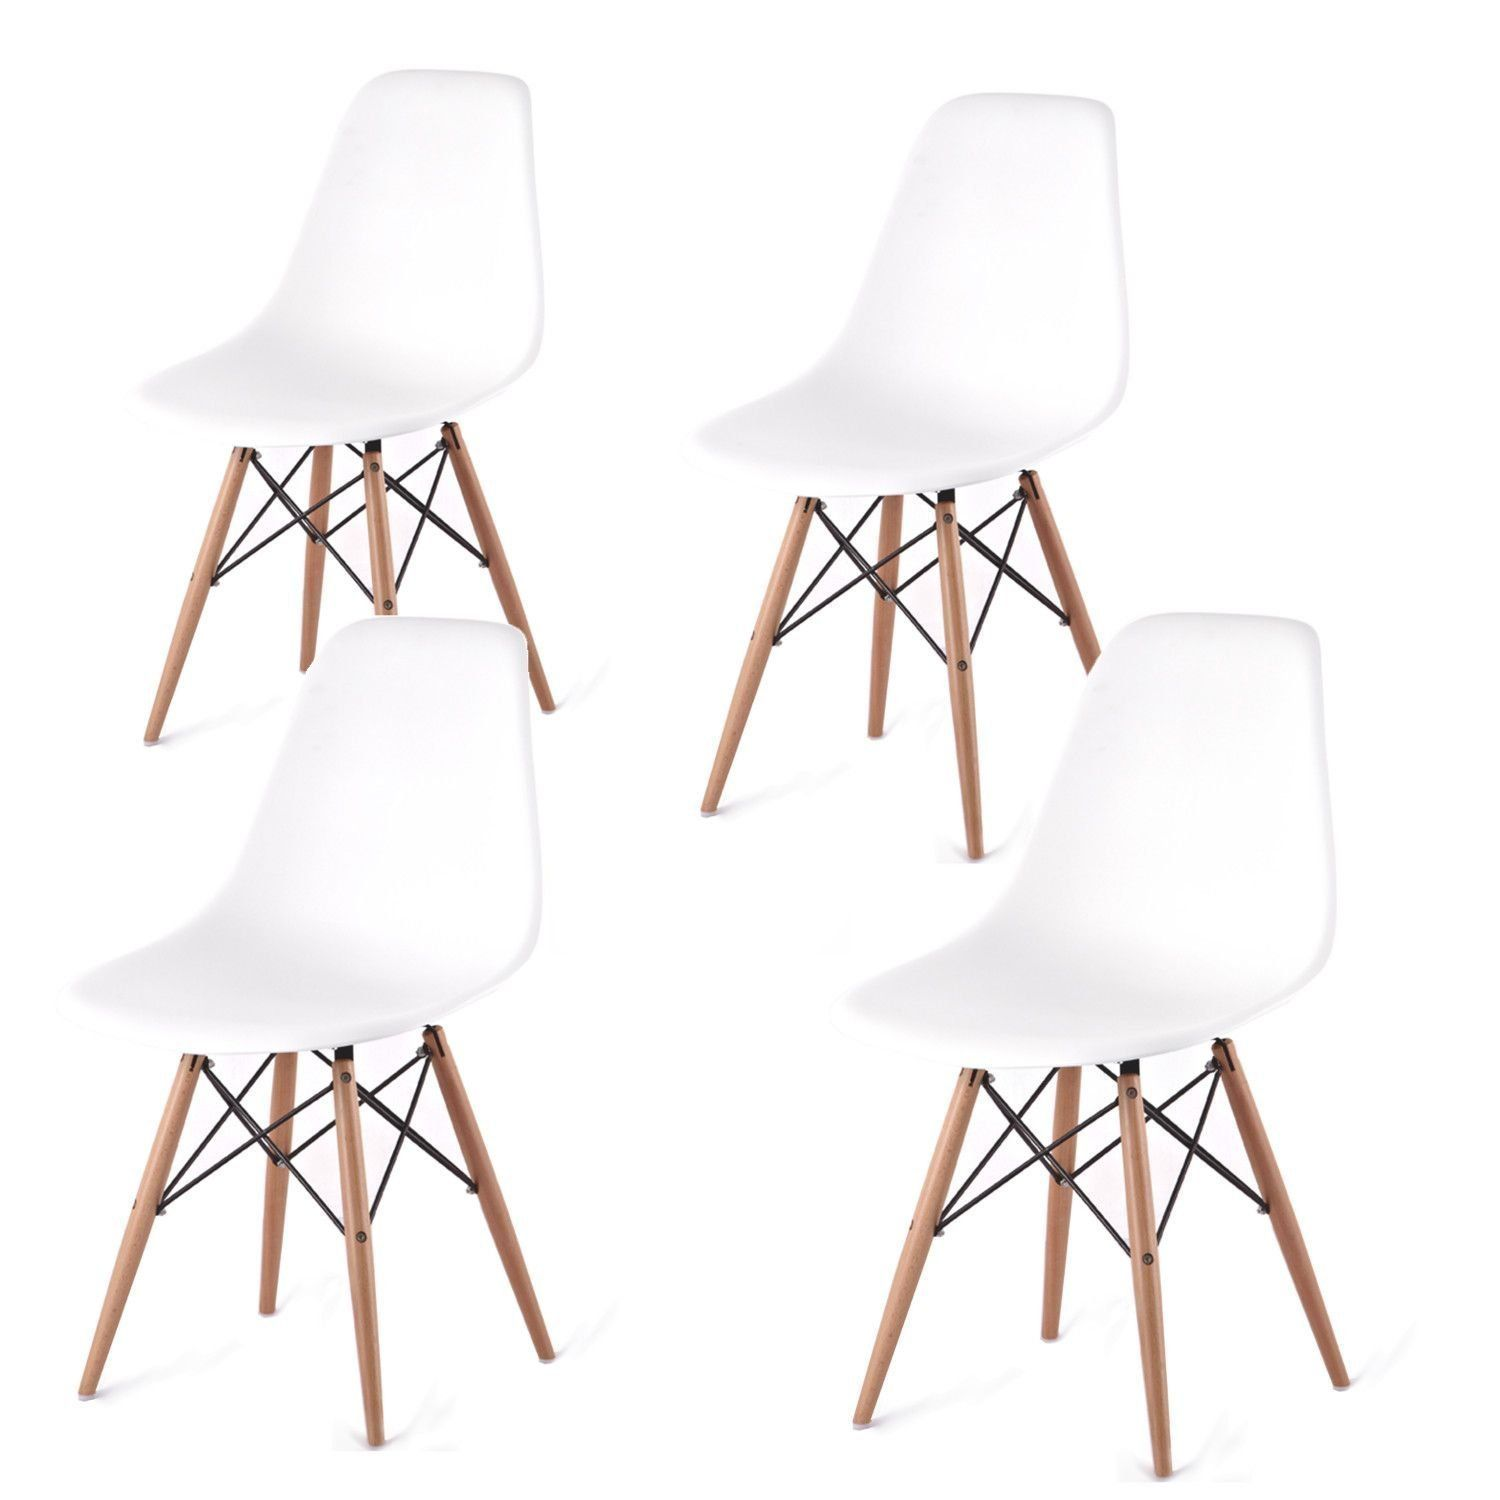 Chaise Design Eames Dsw Blanche.Chaises Design Eames Dsw Blanc 4u Set De Chaises Amazon